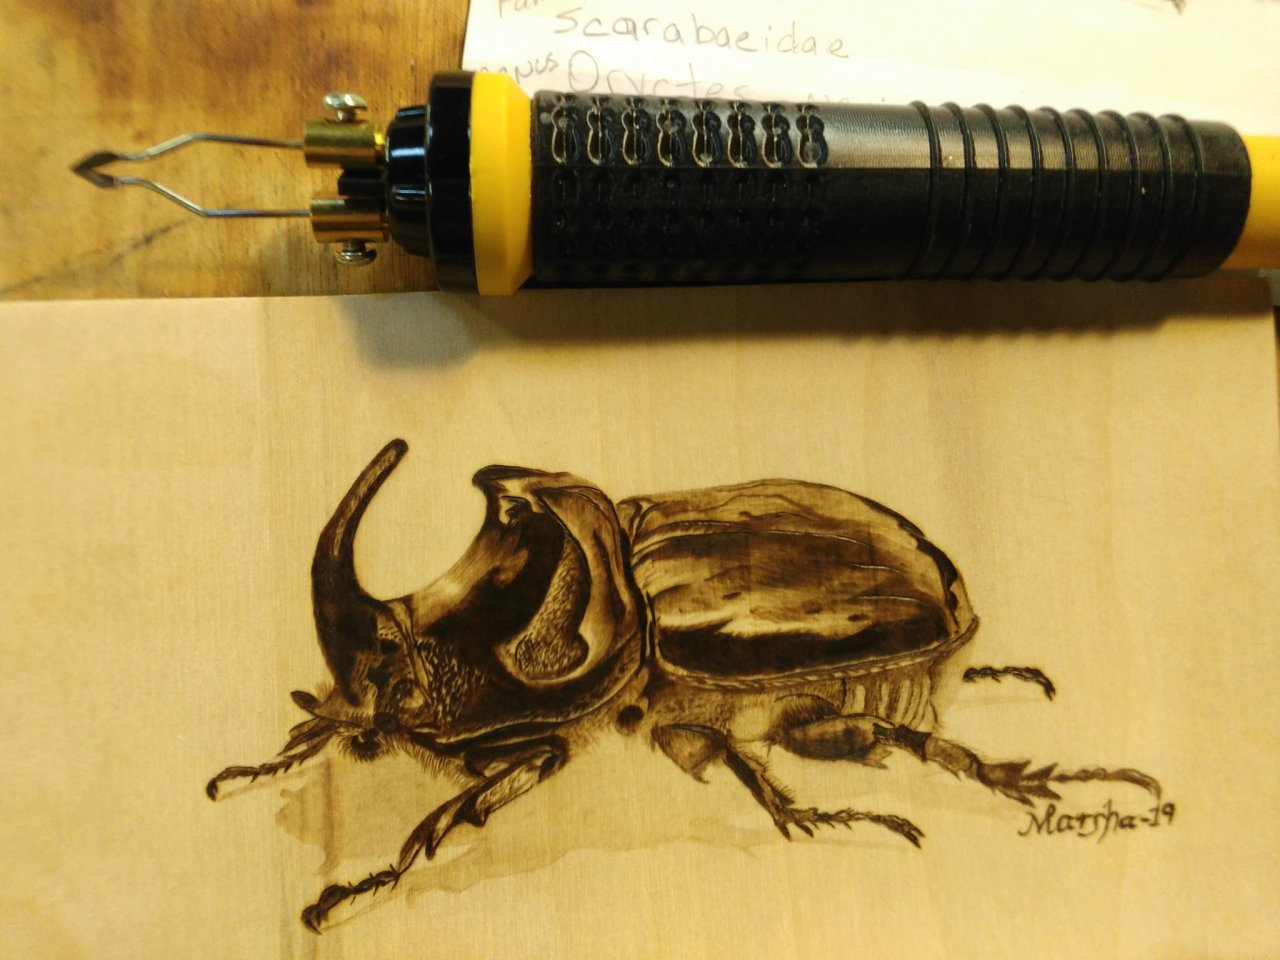 Beetle with pen